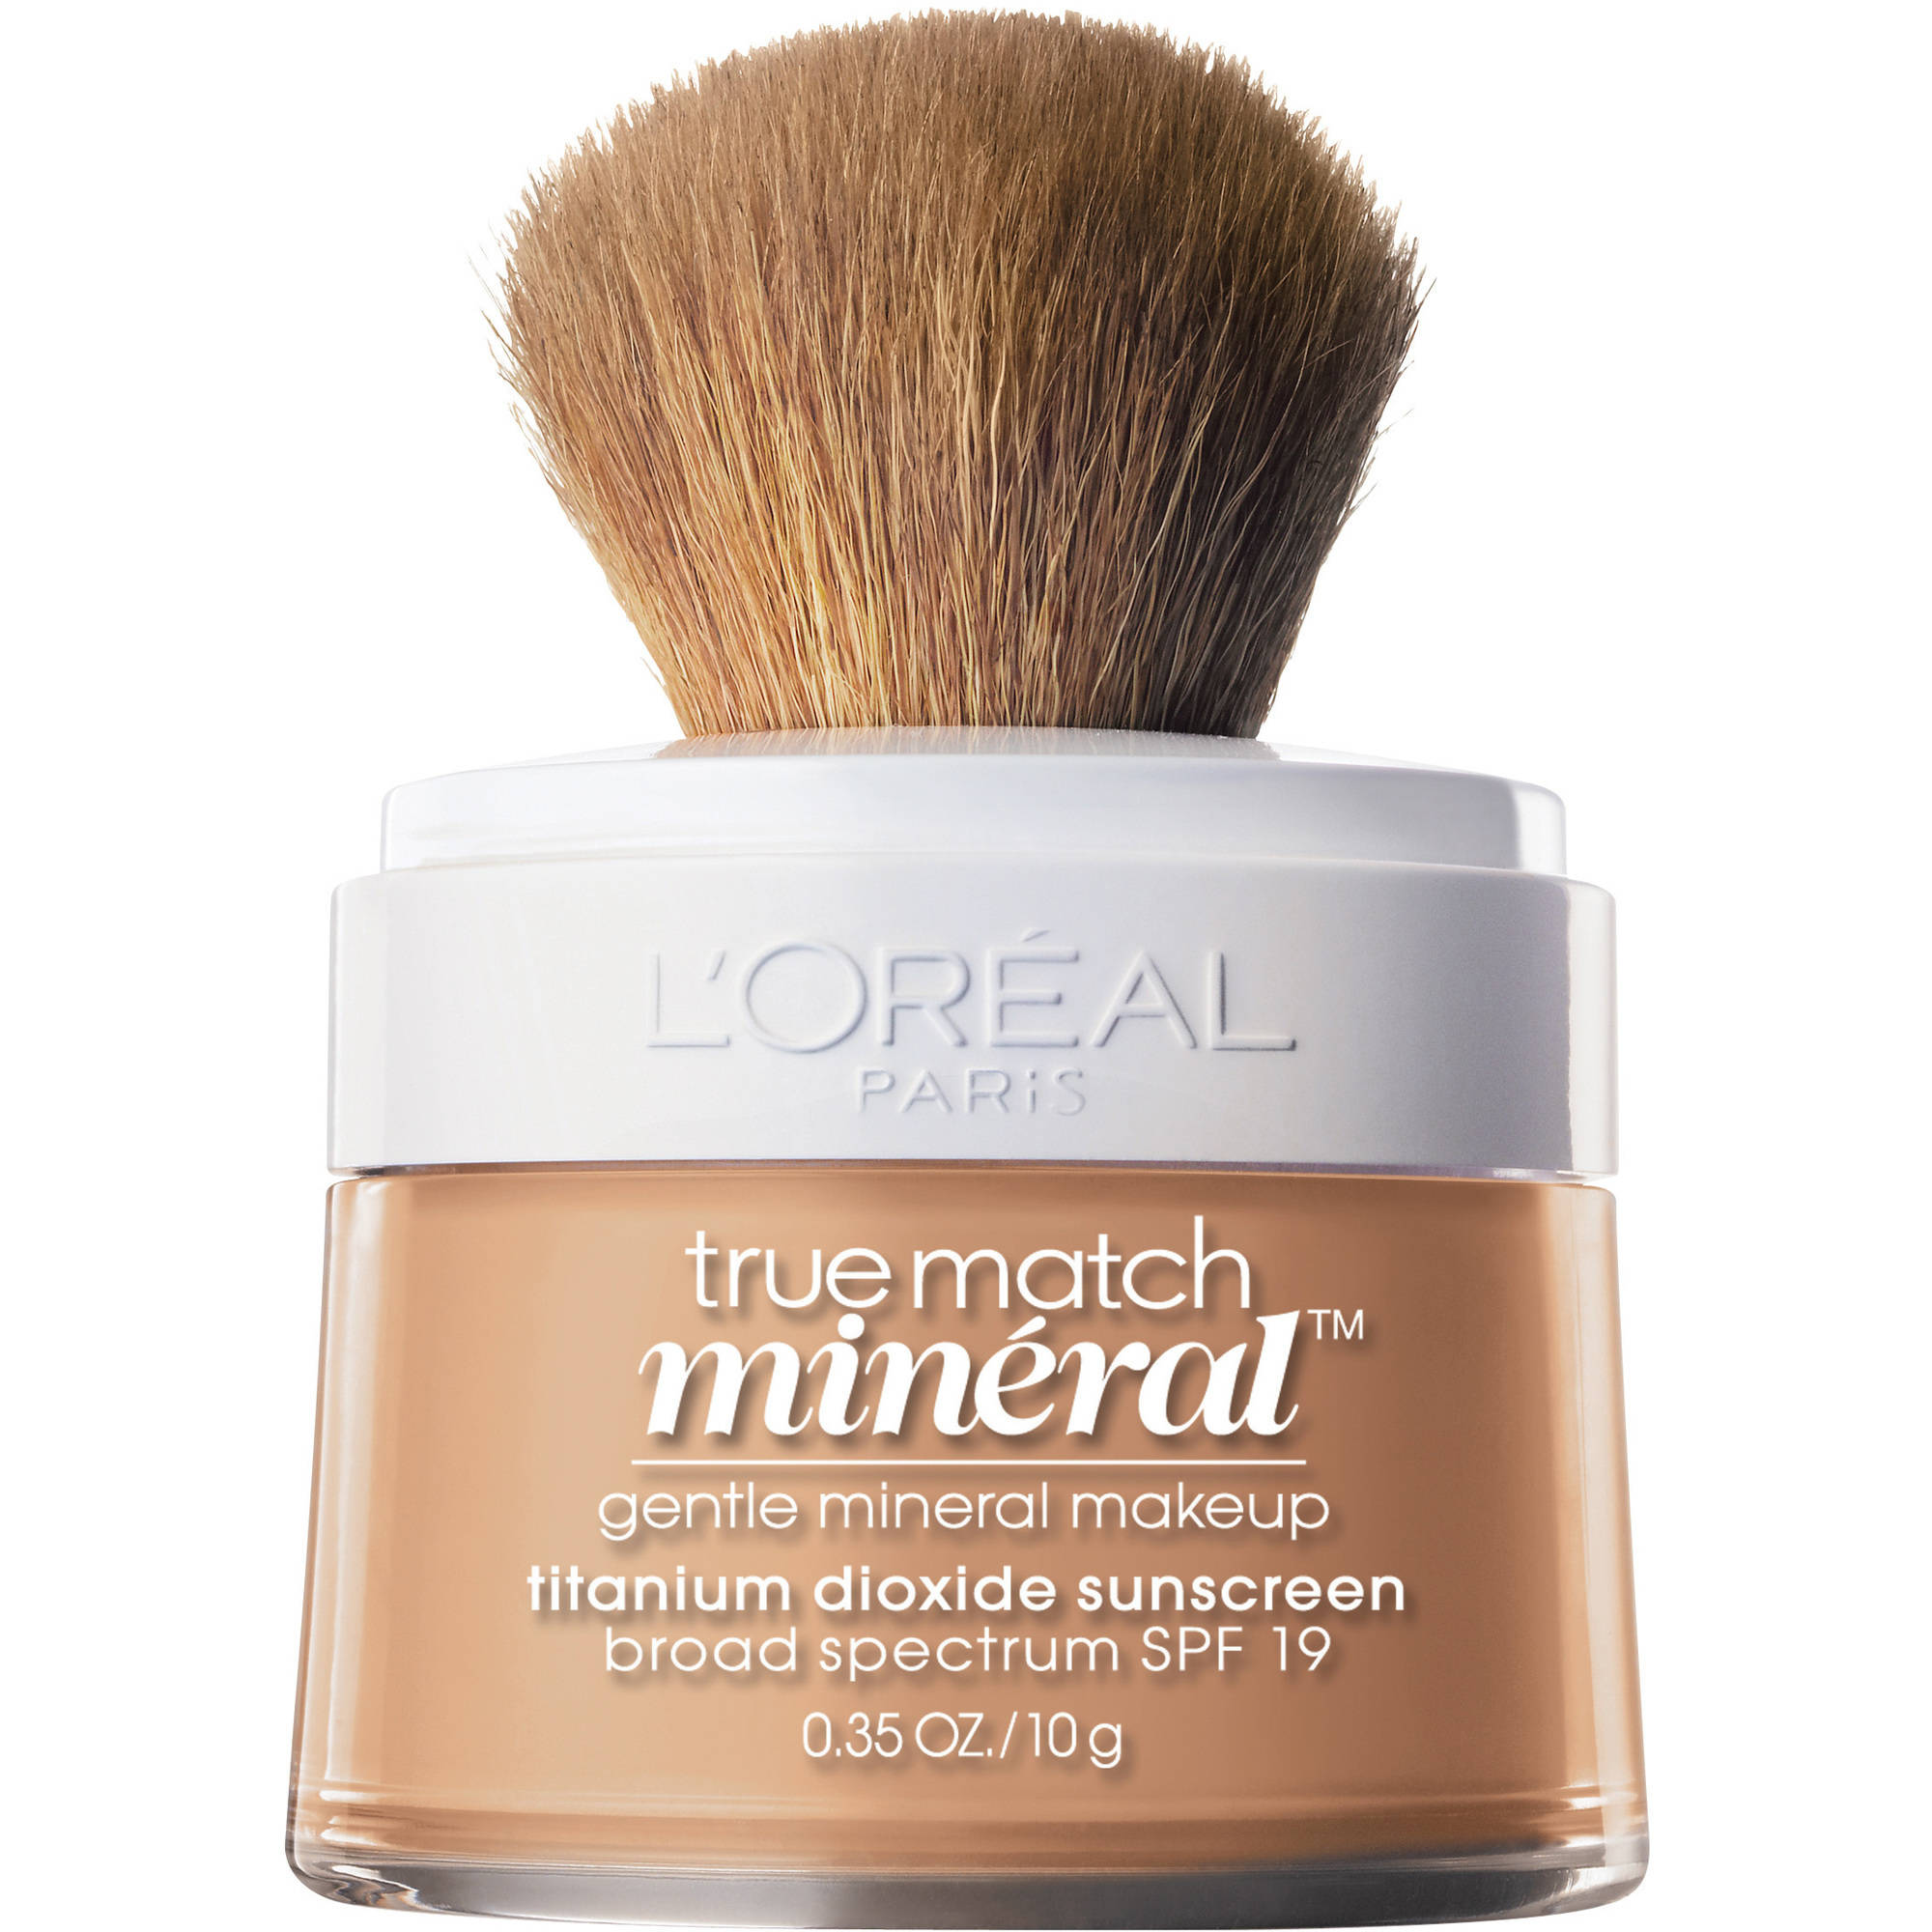 L'Oreal Paris True Match Naturale Gentle Mineral Makeup Foundation, Natural Buff